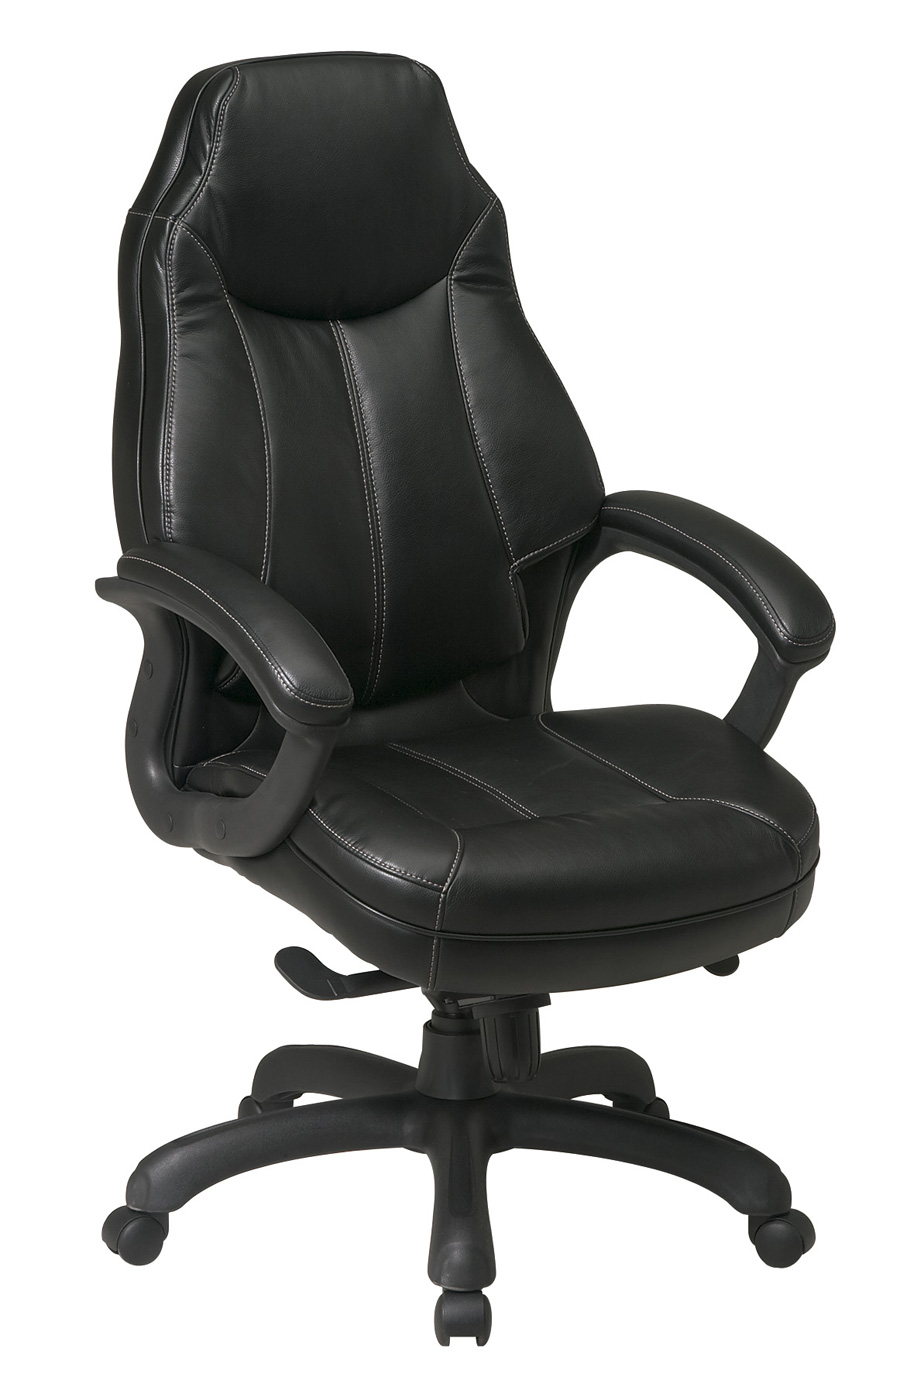 Deluxe Oversized Executive Faux Leather Chair With Padded